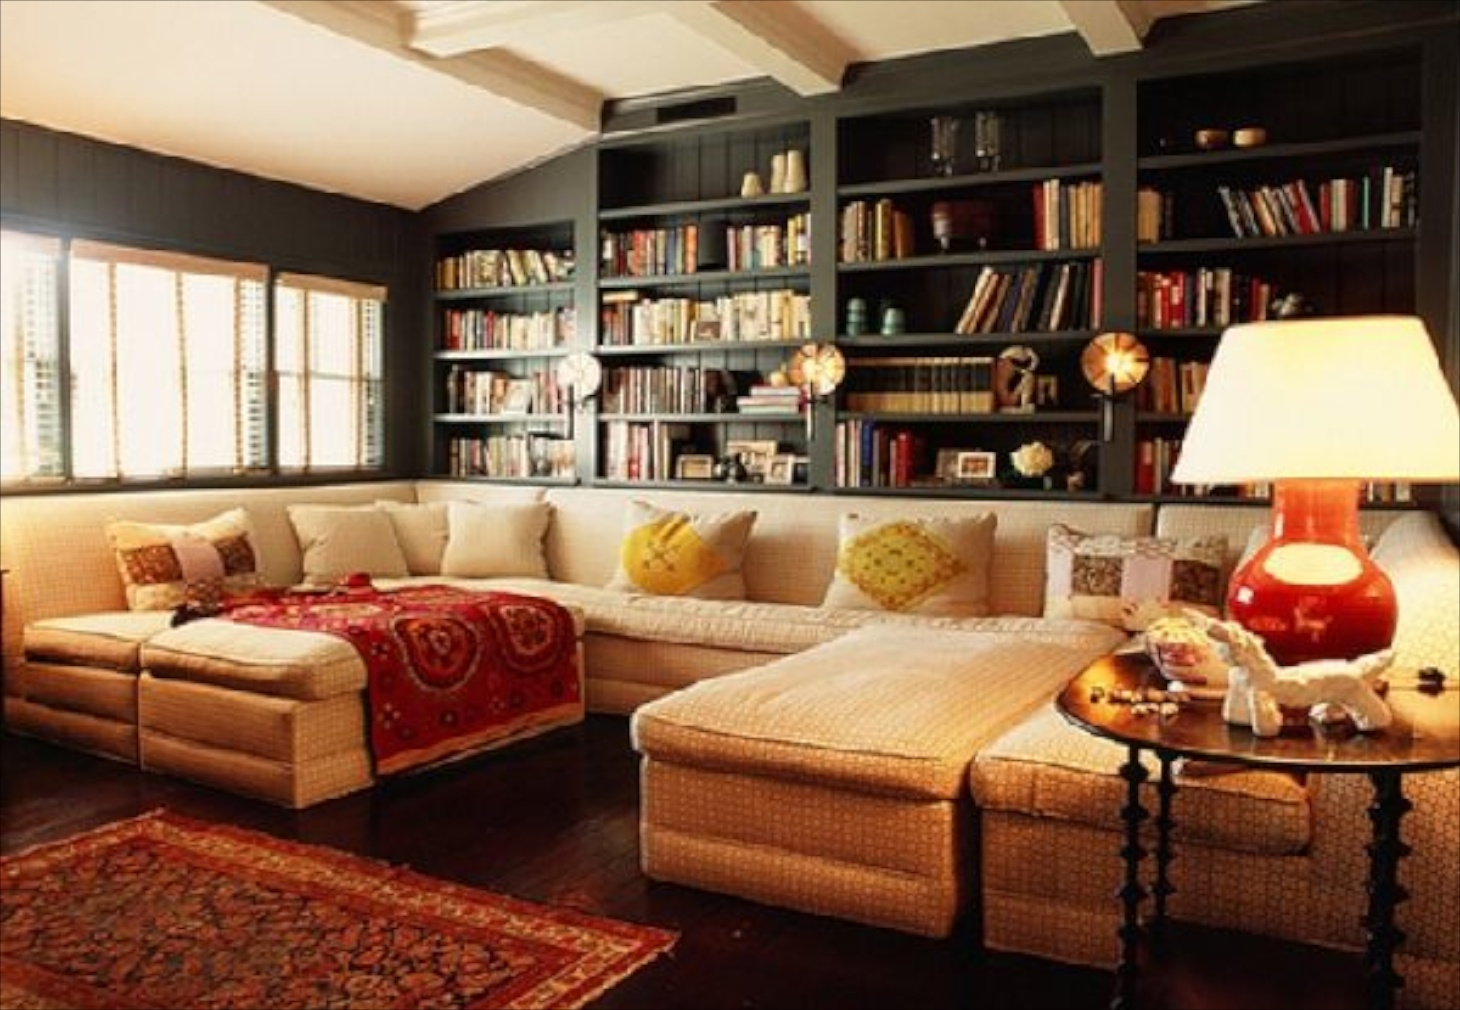 23 sofas and bookcase ideas in cozy living room design with mixture classic and modern styles whg Design my living room